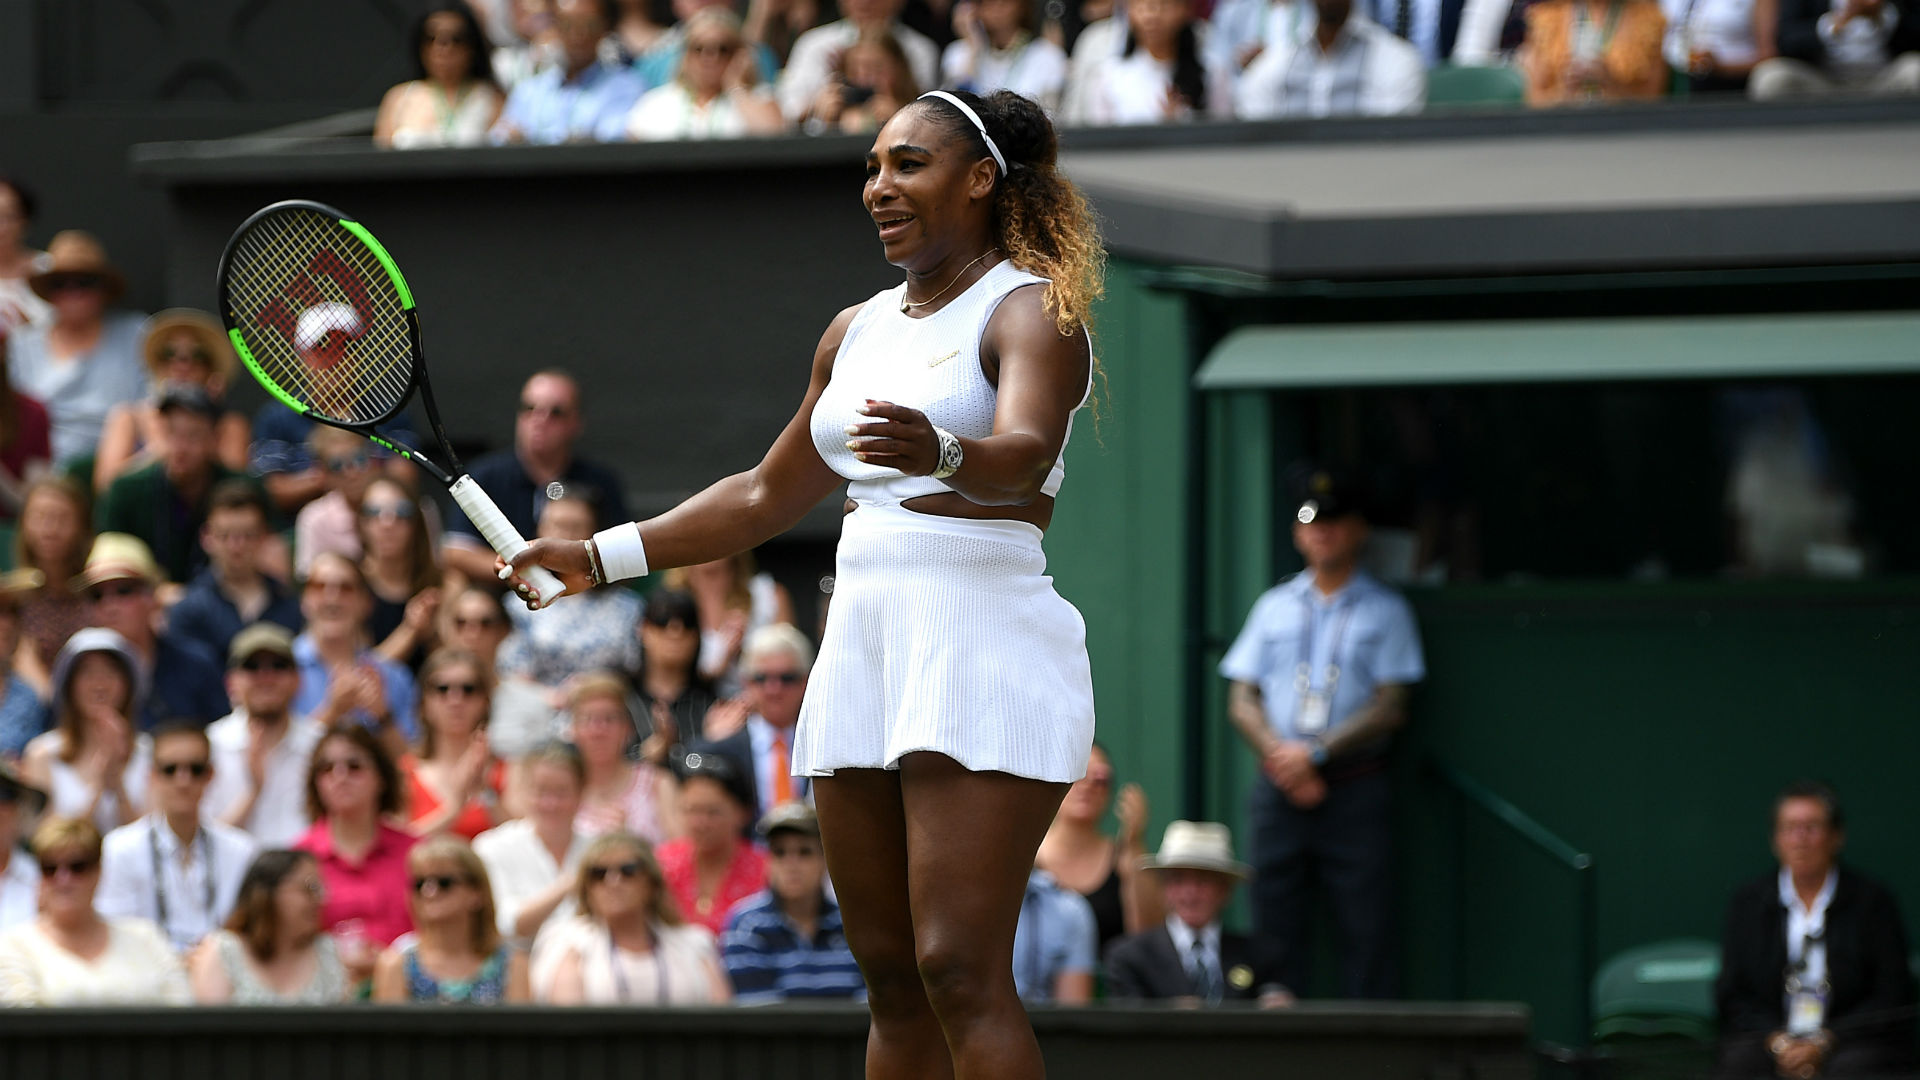 I was a deer in the headlights - Serena congratulates outstanding Halep